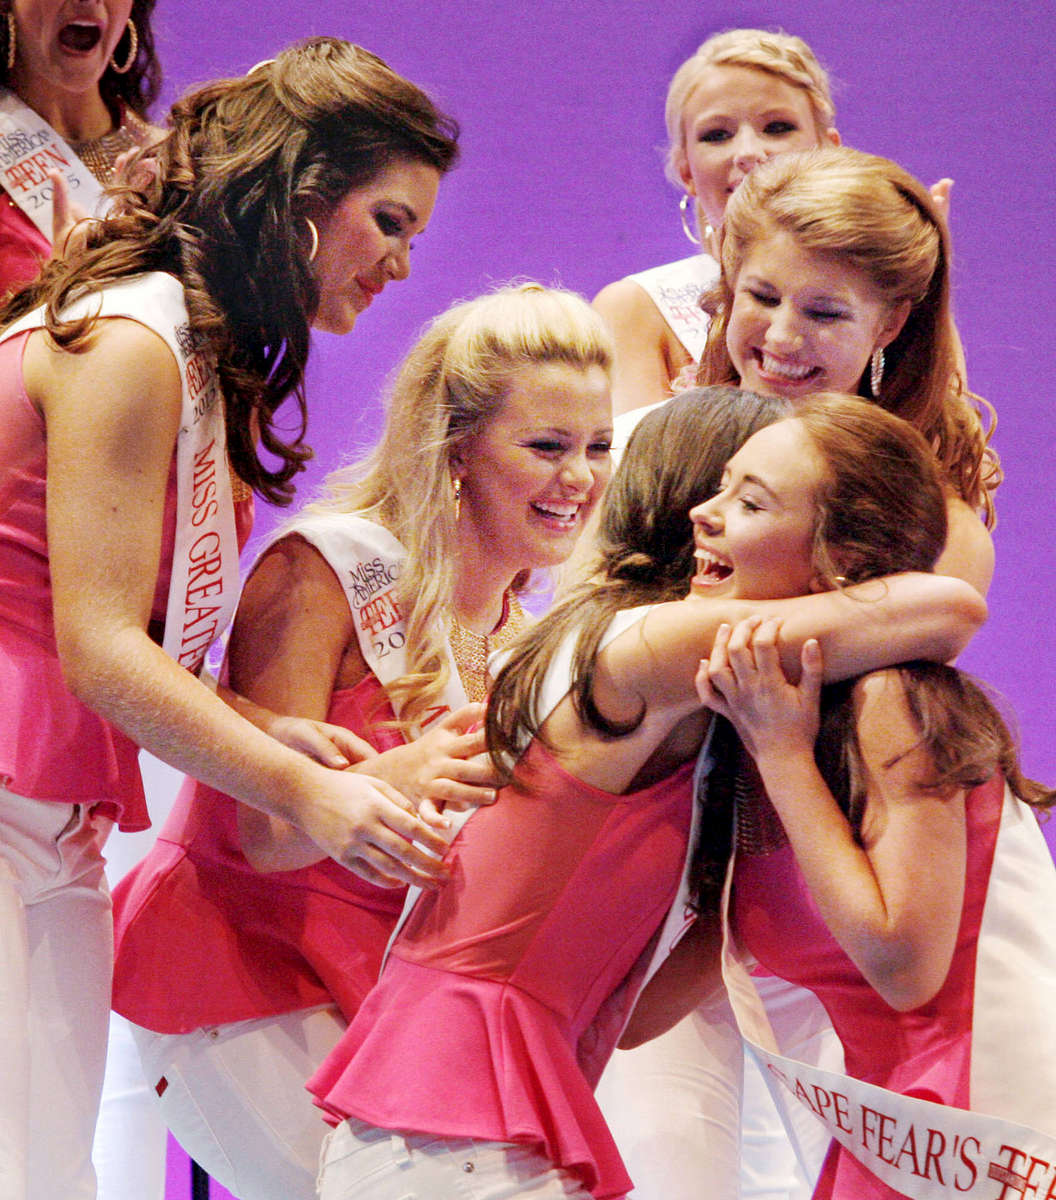 Third Place | Multiple PhotosMark Dolejs, Daily DispatchEvan O'Geary joins other contestants as they congratulate Catherine White, Miss Goldsboro's Outstanding Teen, after it was announced that she was one of the top 15 finalists. O'Geary did not finish as a finalist.